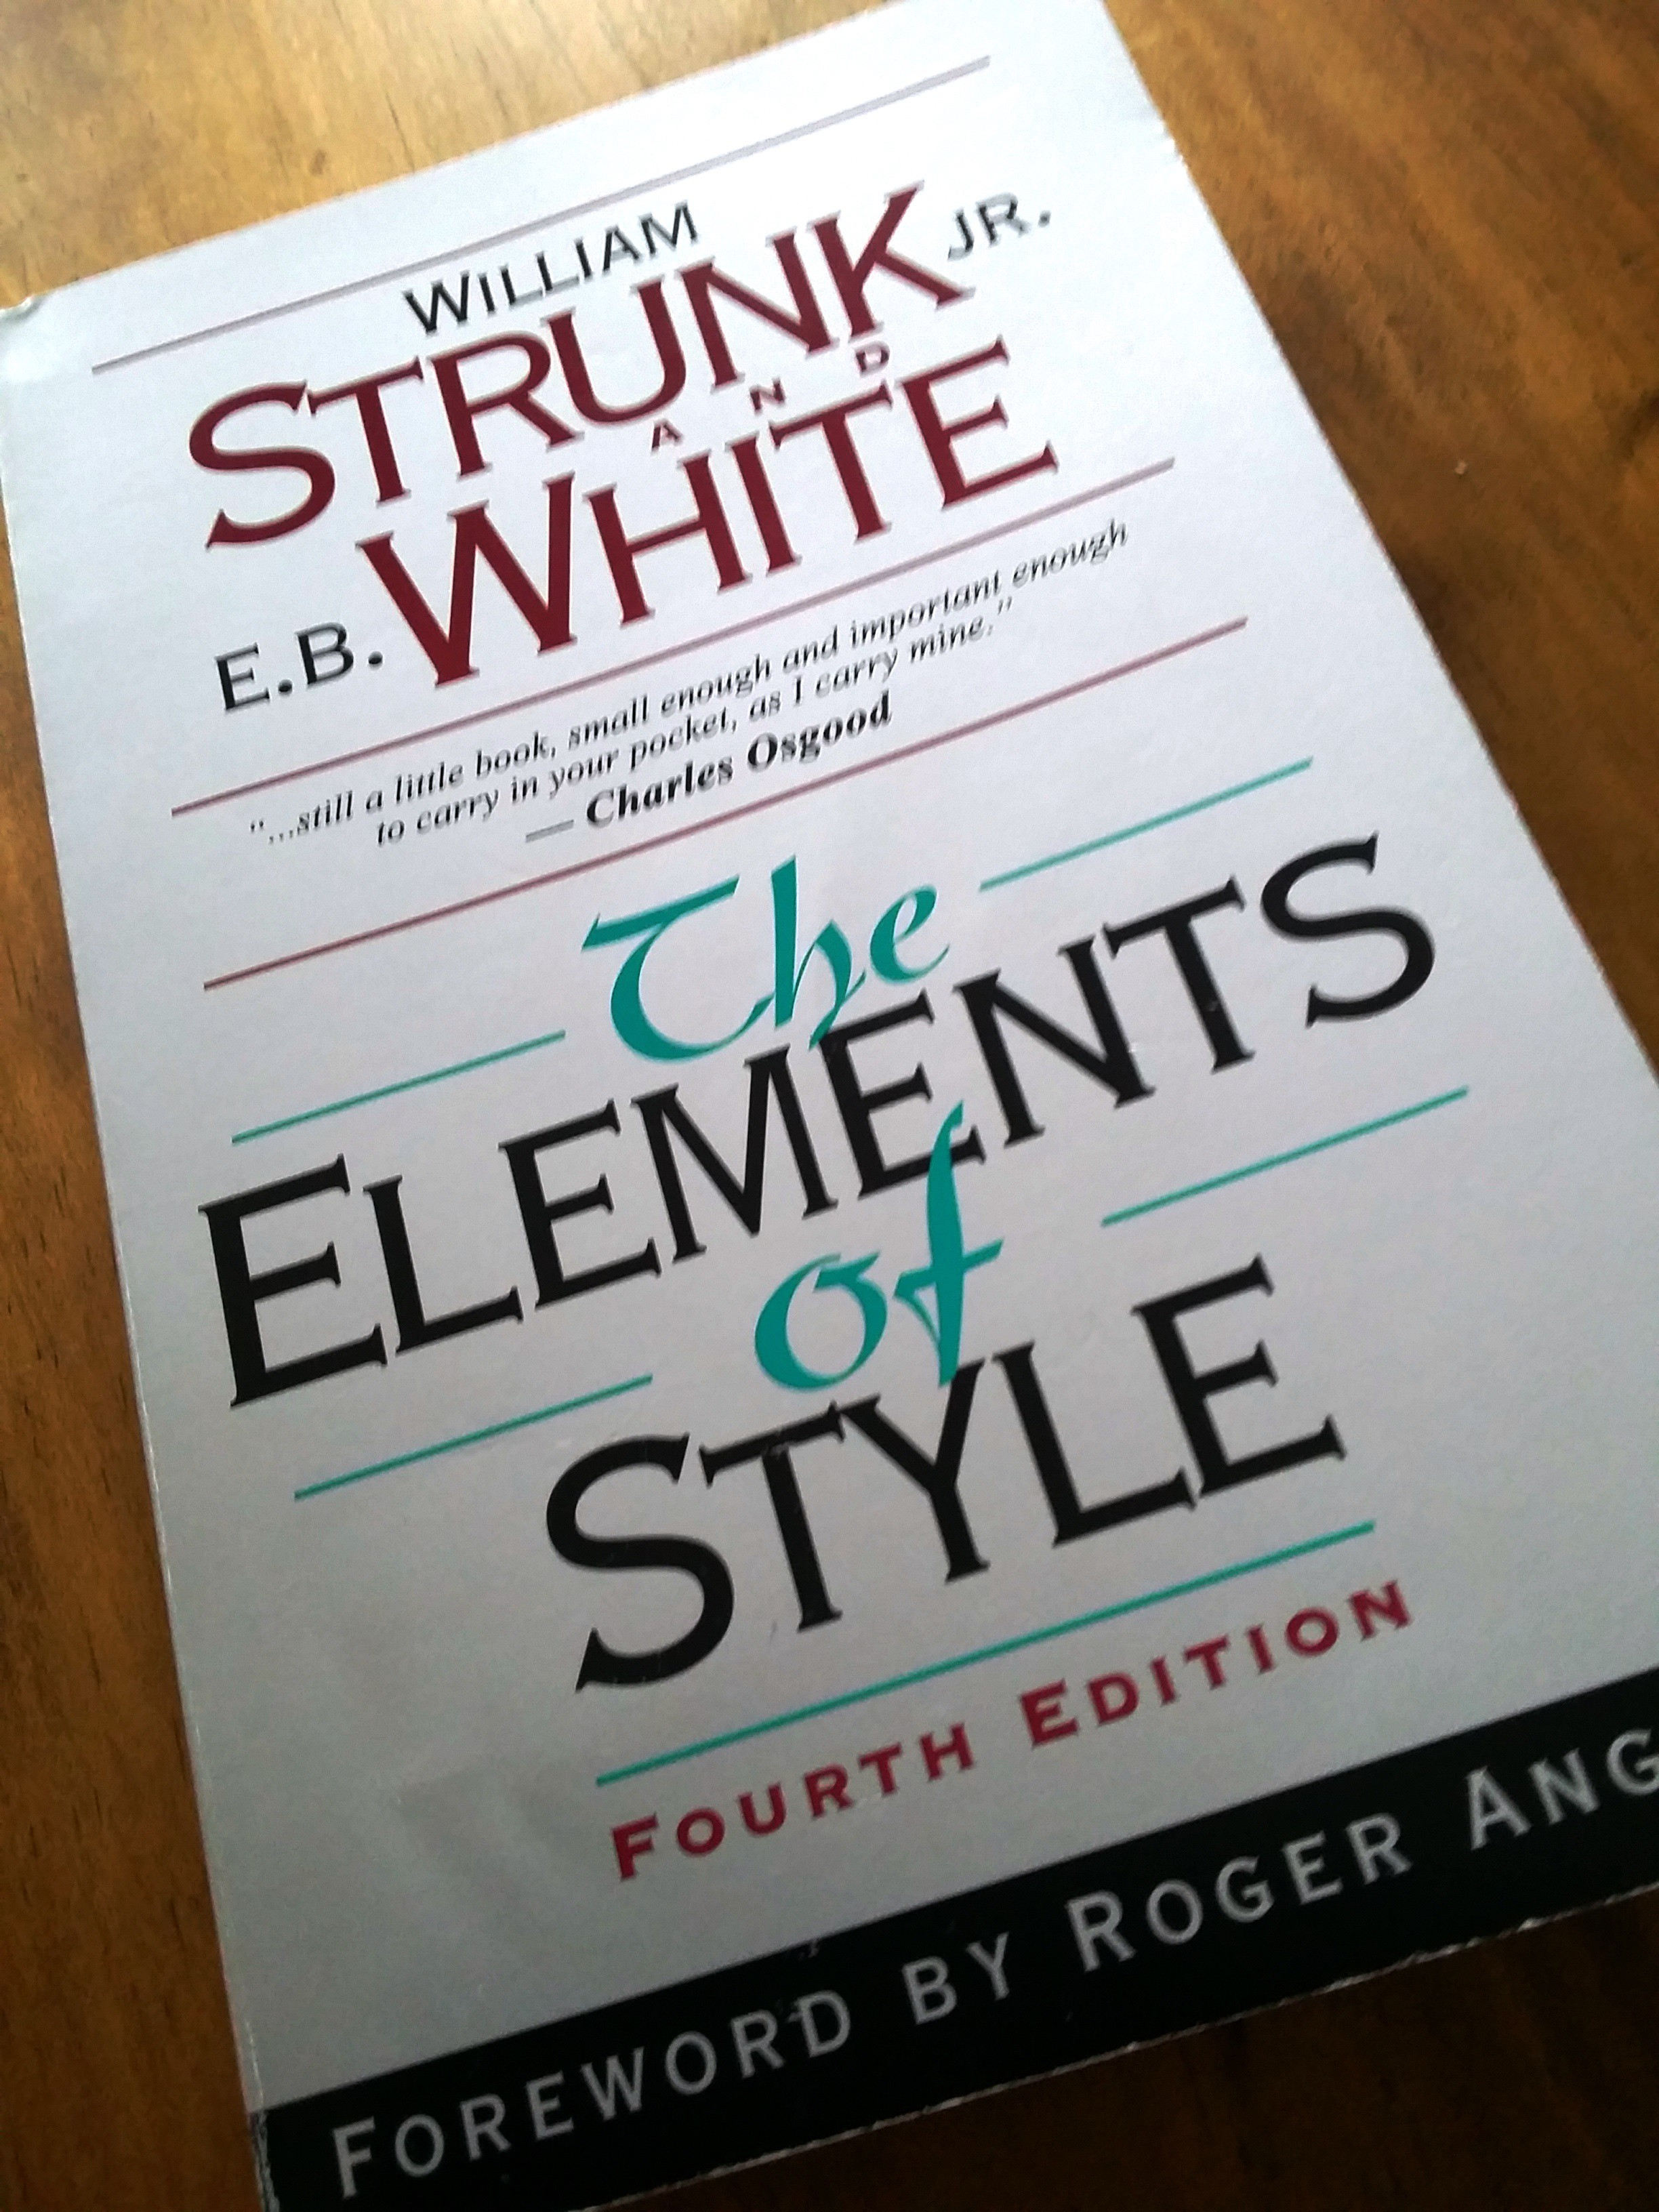 elements of style in writing Academic writing refers to a style of expression that researchers use to define the intellectual boundaries of their disciplines and their specific areas of expertise characteristics of academic writing include a formal tone, use of the third-person rather than first-person perspective (usually), a clear focus on the research problem under investigation, and precise word choice.